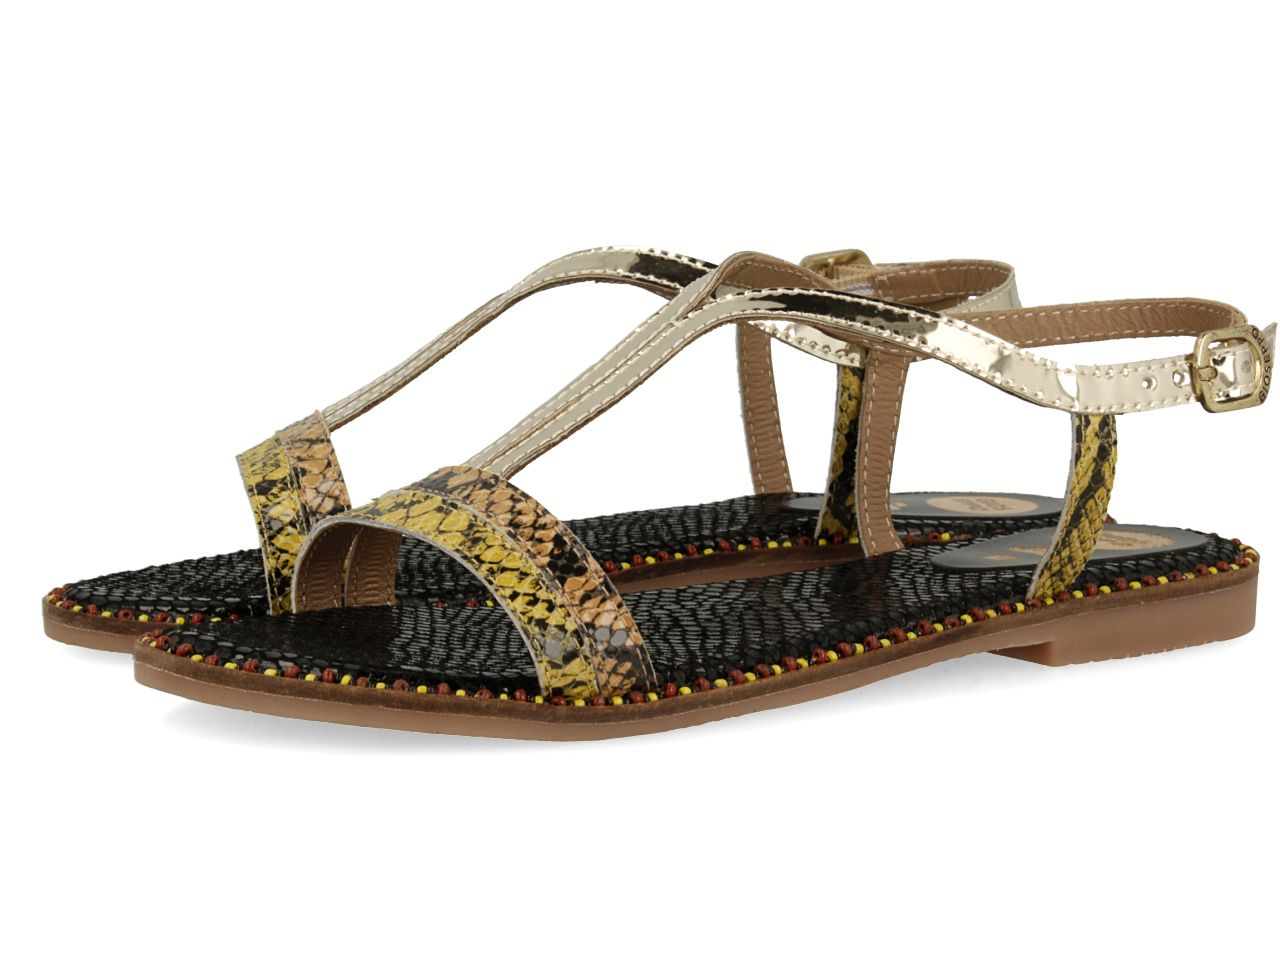 Gioseppo Gioseppo Gold-Multicolor Sandals, Multi-Coloured